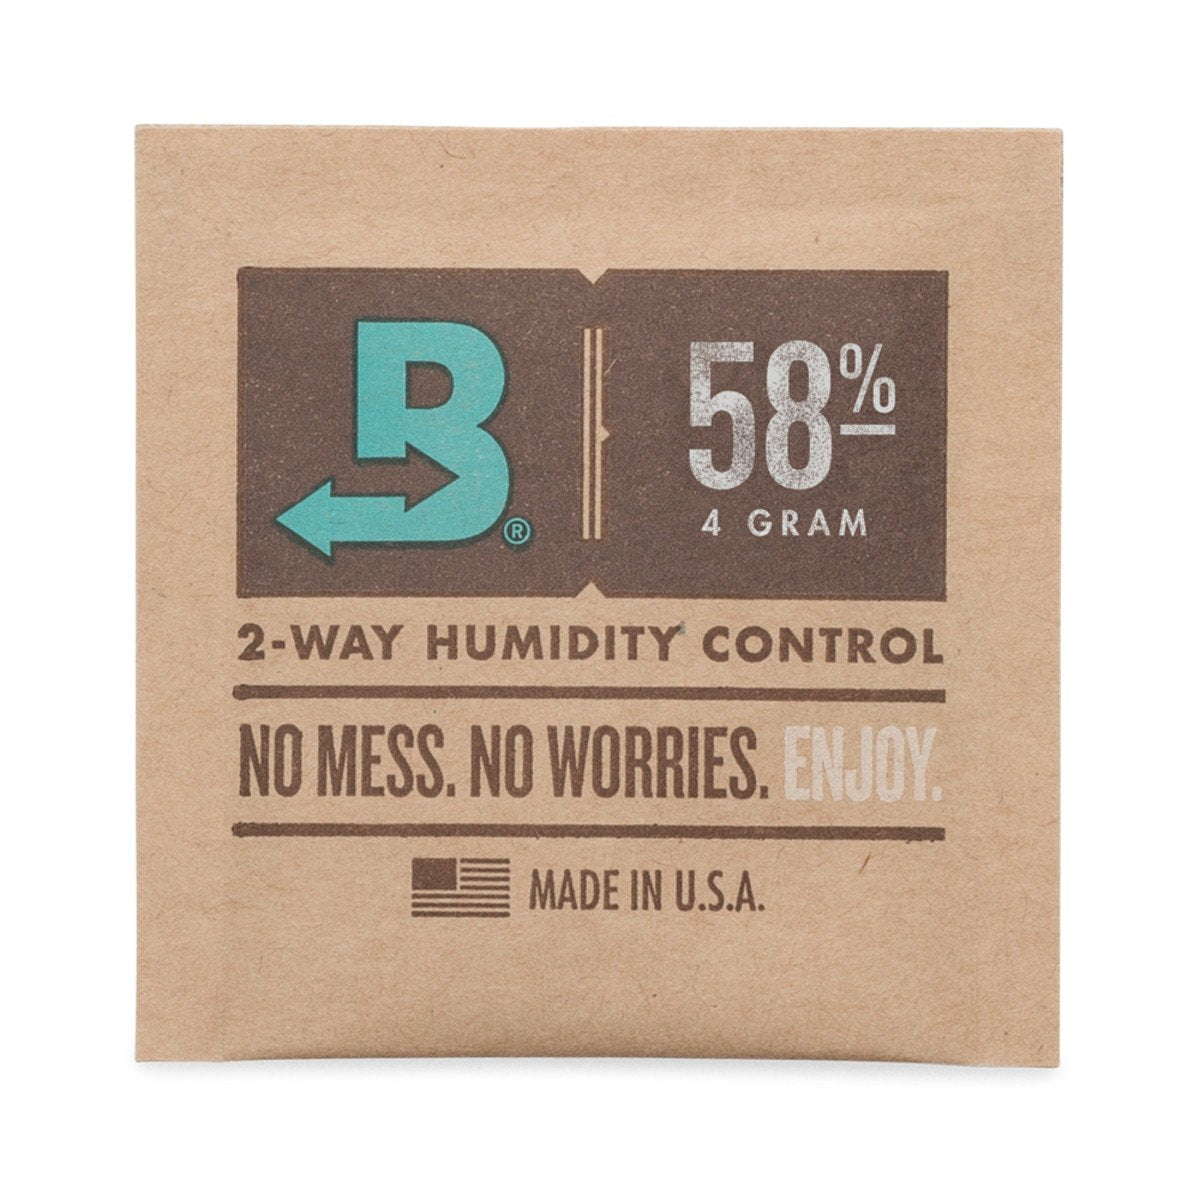 boveda humidity packs offer 2-way humidity to preserve flavor